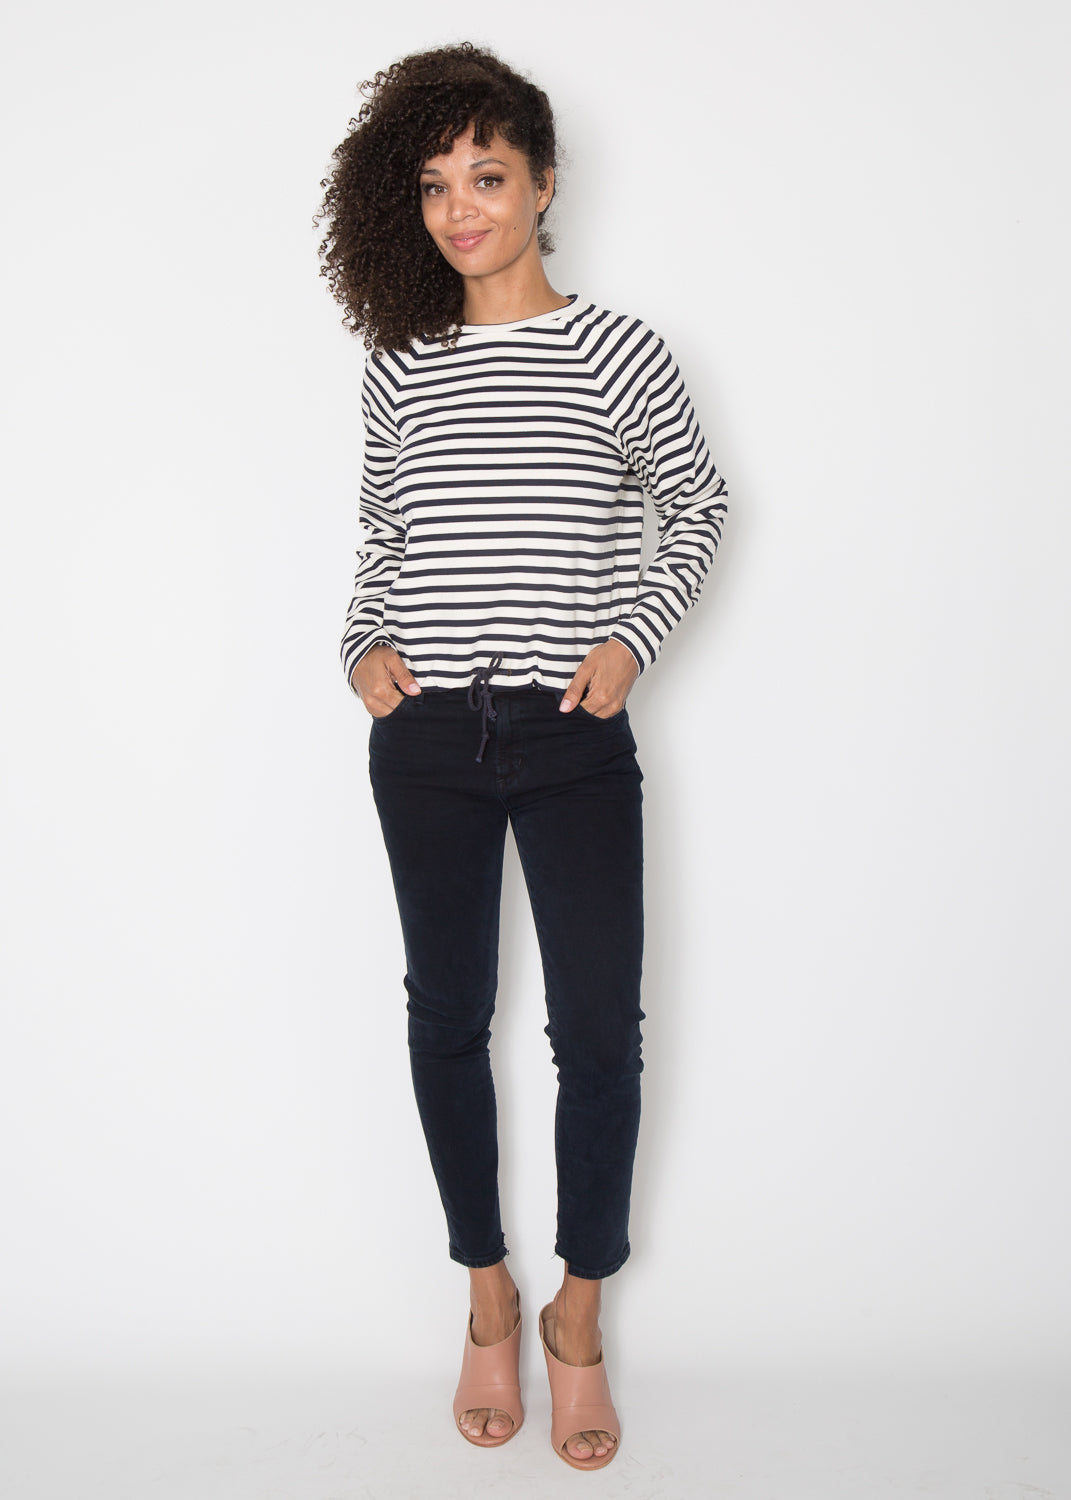 Harvey Faircloth Raglan Long Sleeve Top